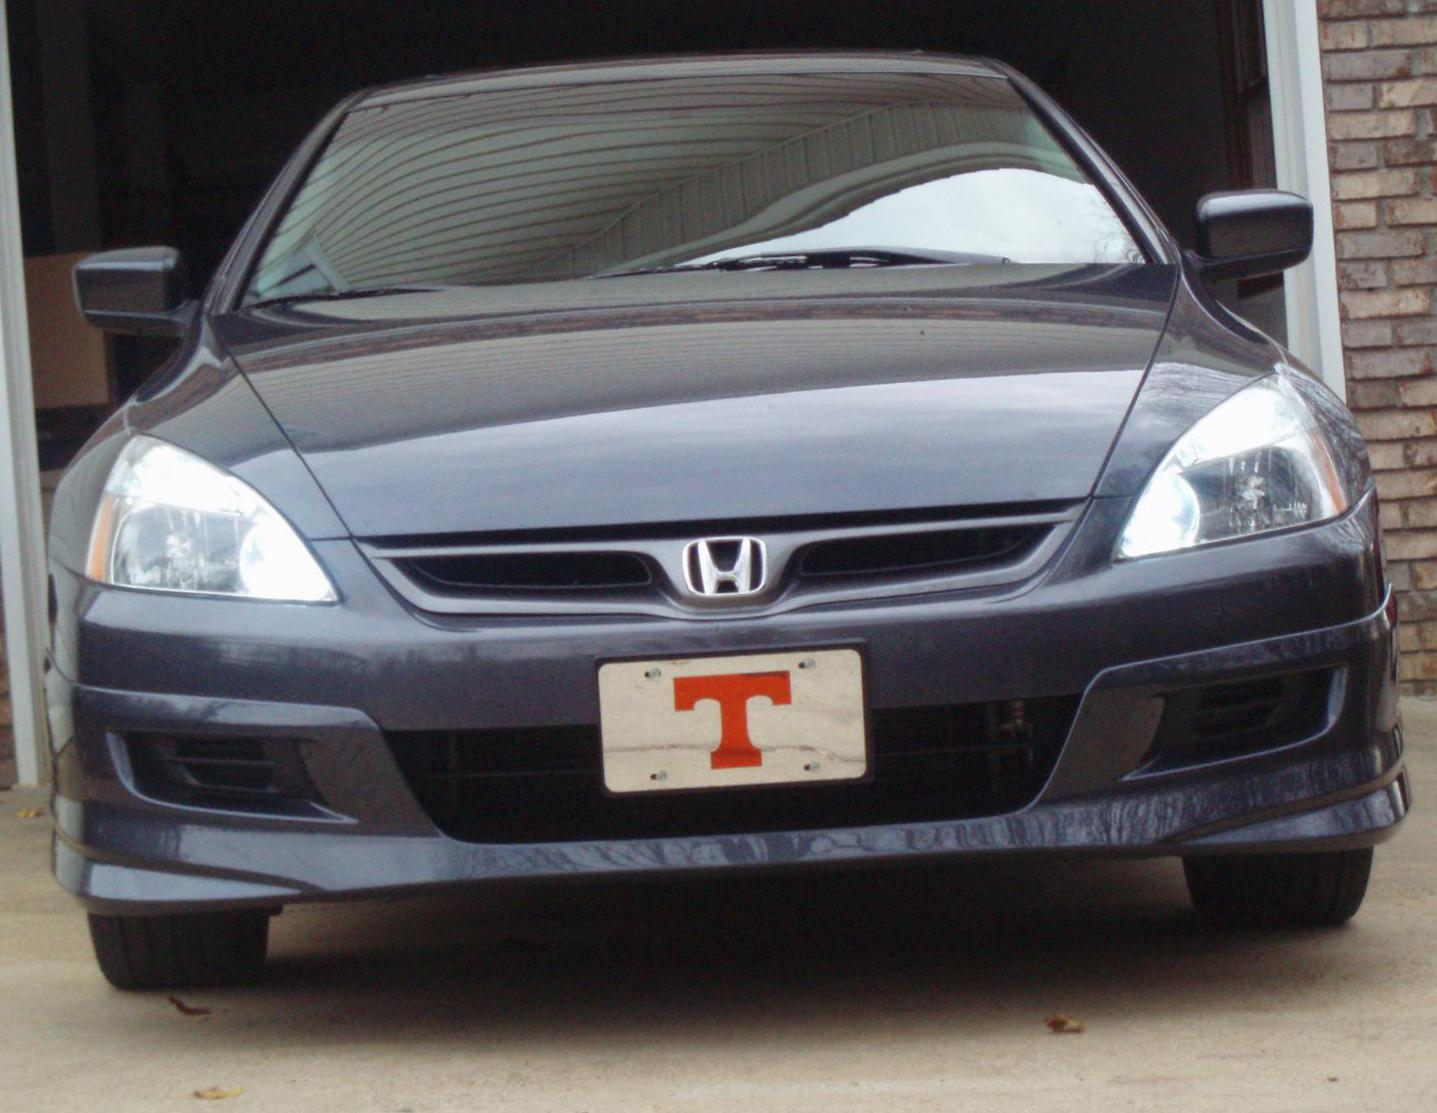 Honda Accord Coupe Photos And Specs Photo Honda Accord Coupe Tuning And 24 Perfect Photos Of Honda Accord Coupe